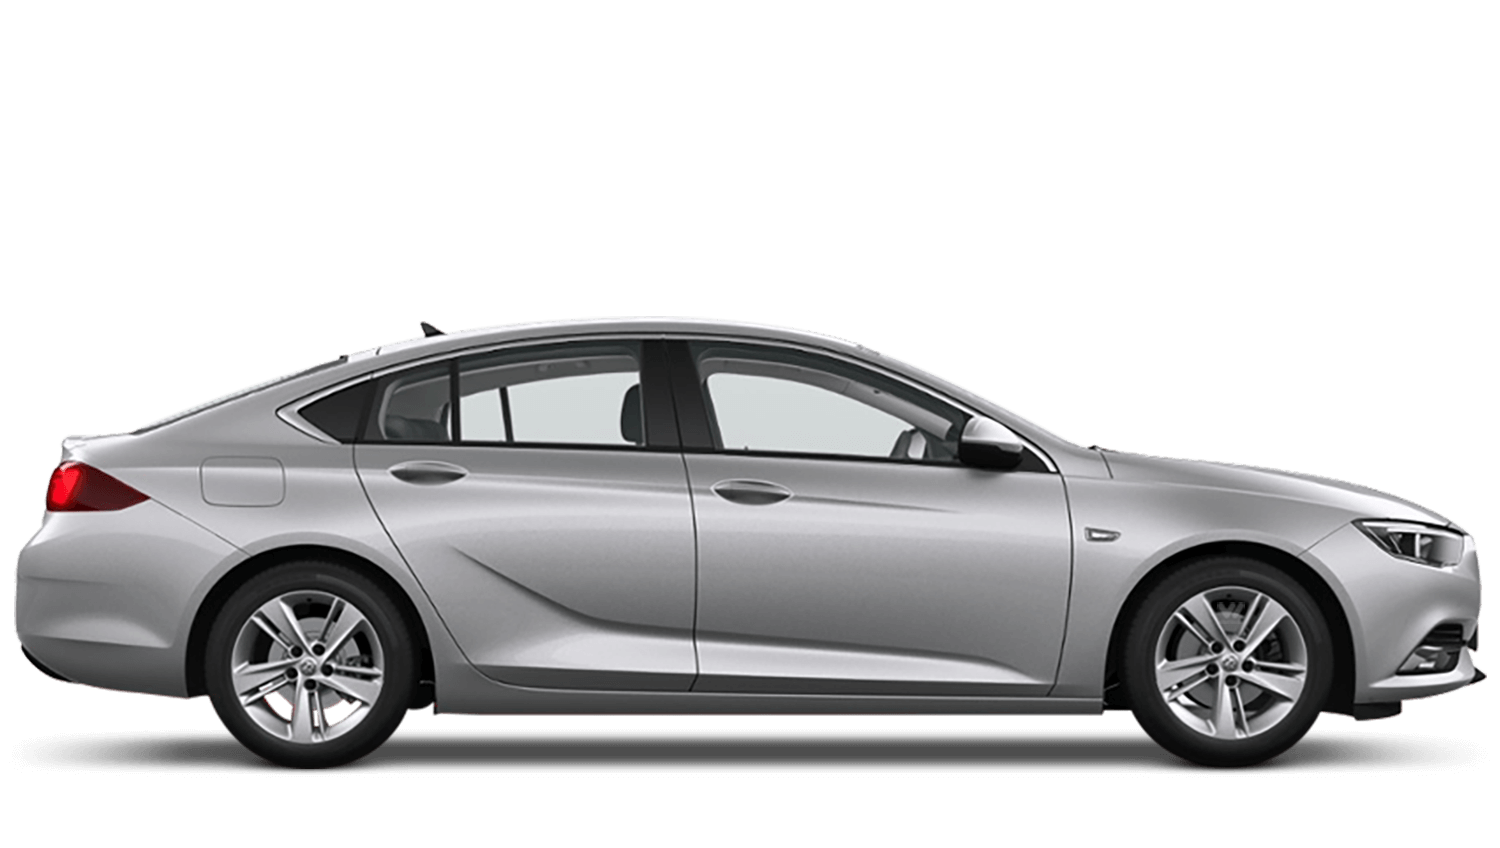 Sovereign Silver (Metallic) Vauxhall Insignia Grand Sport